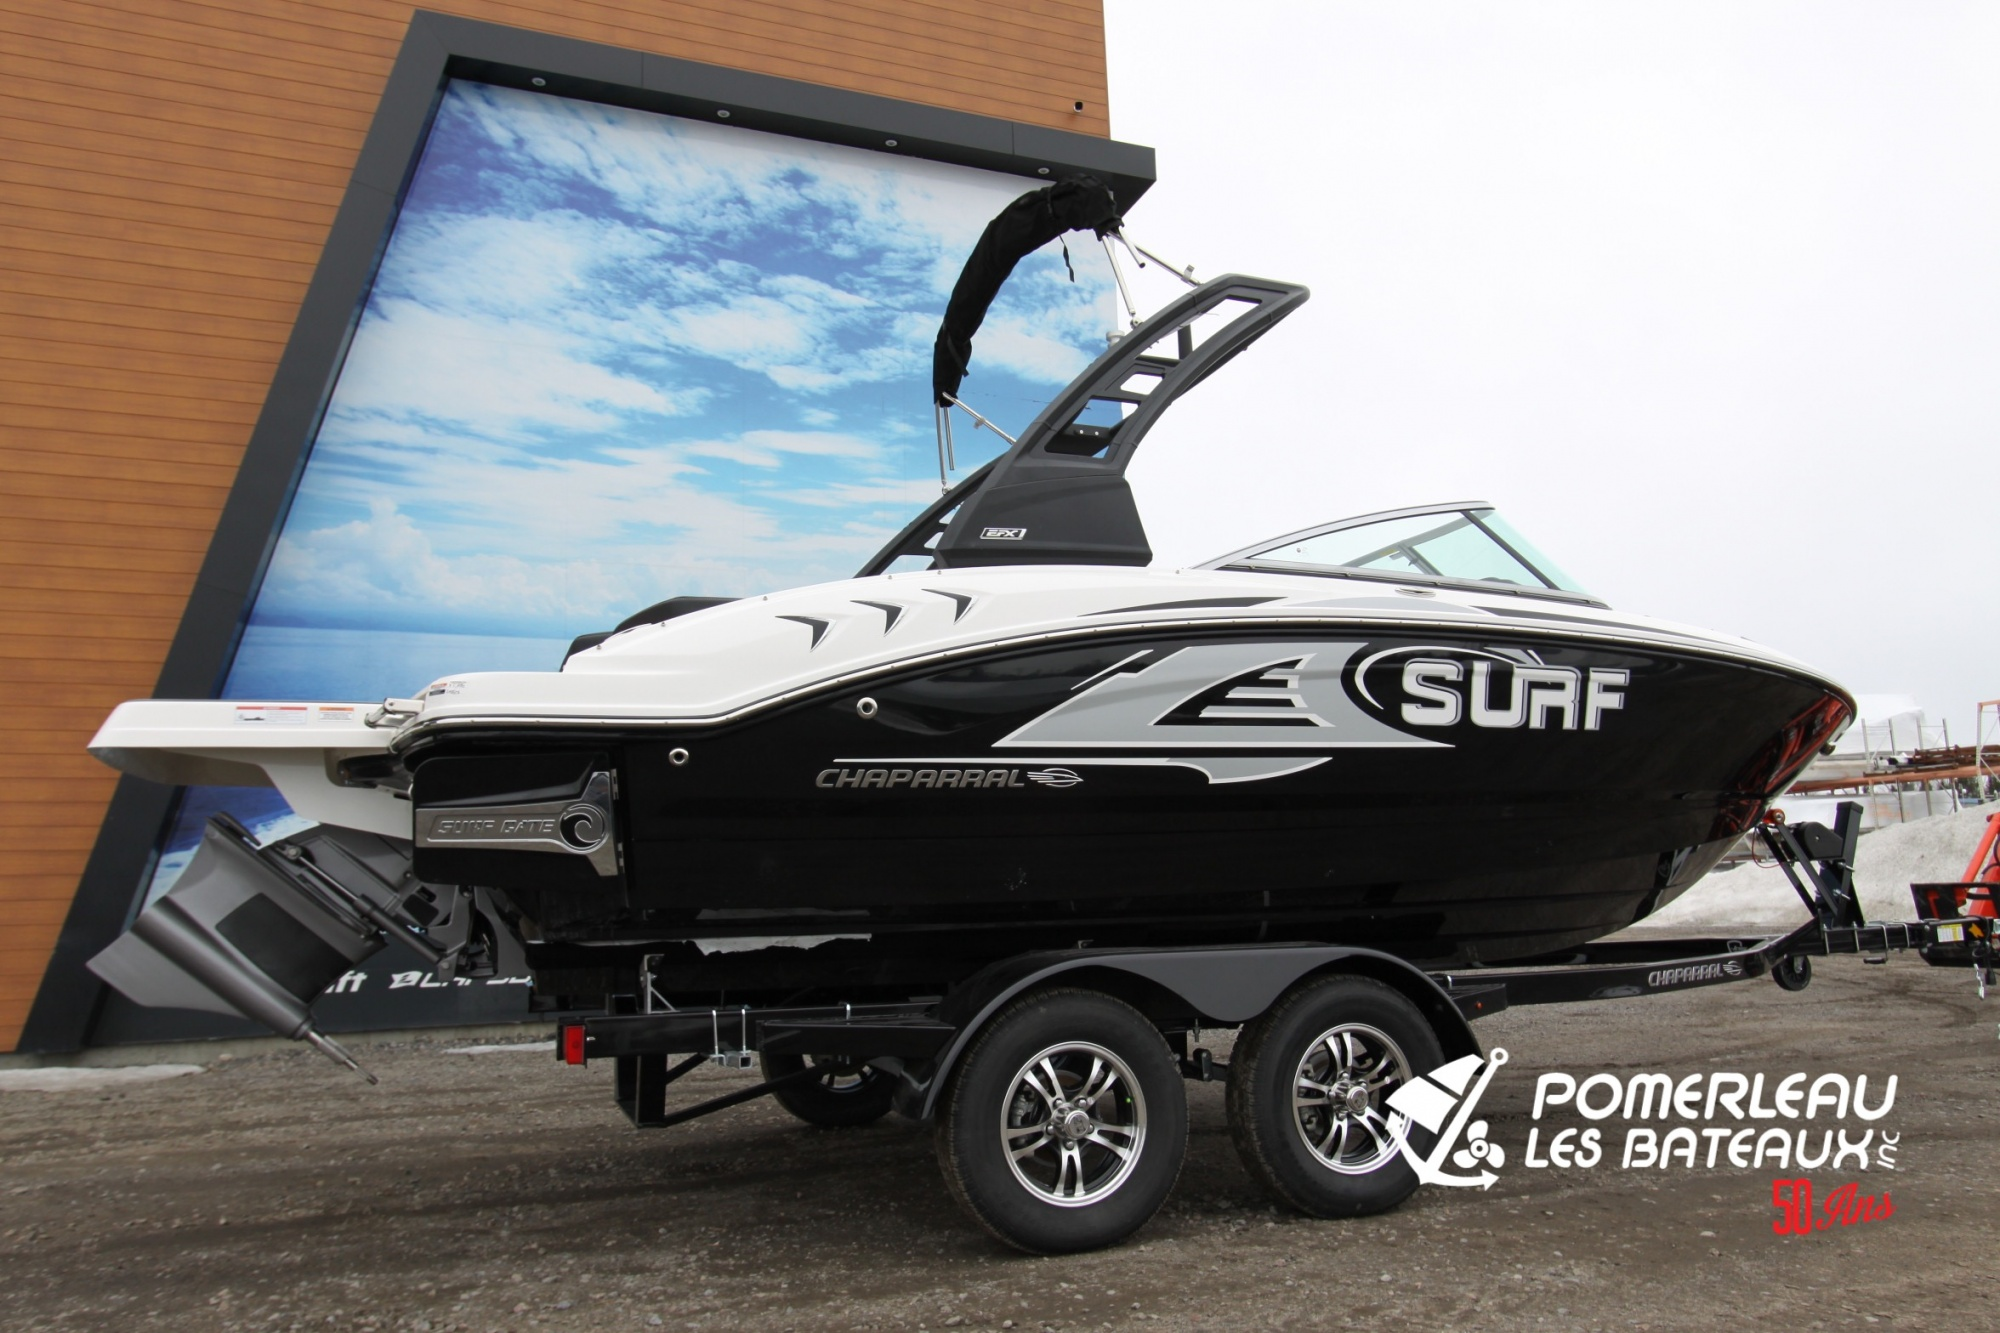 Chaparral 21 Surf - IMG_5159